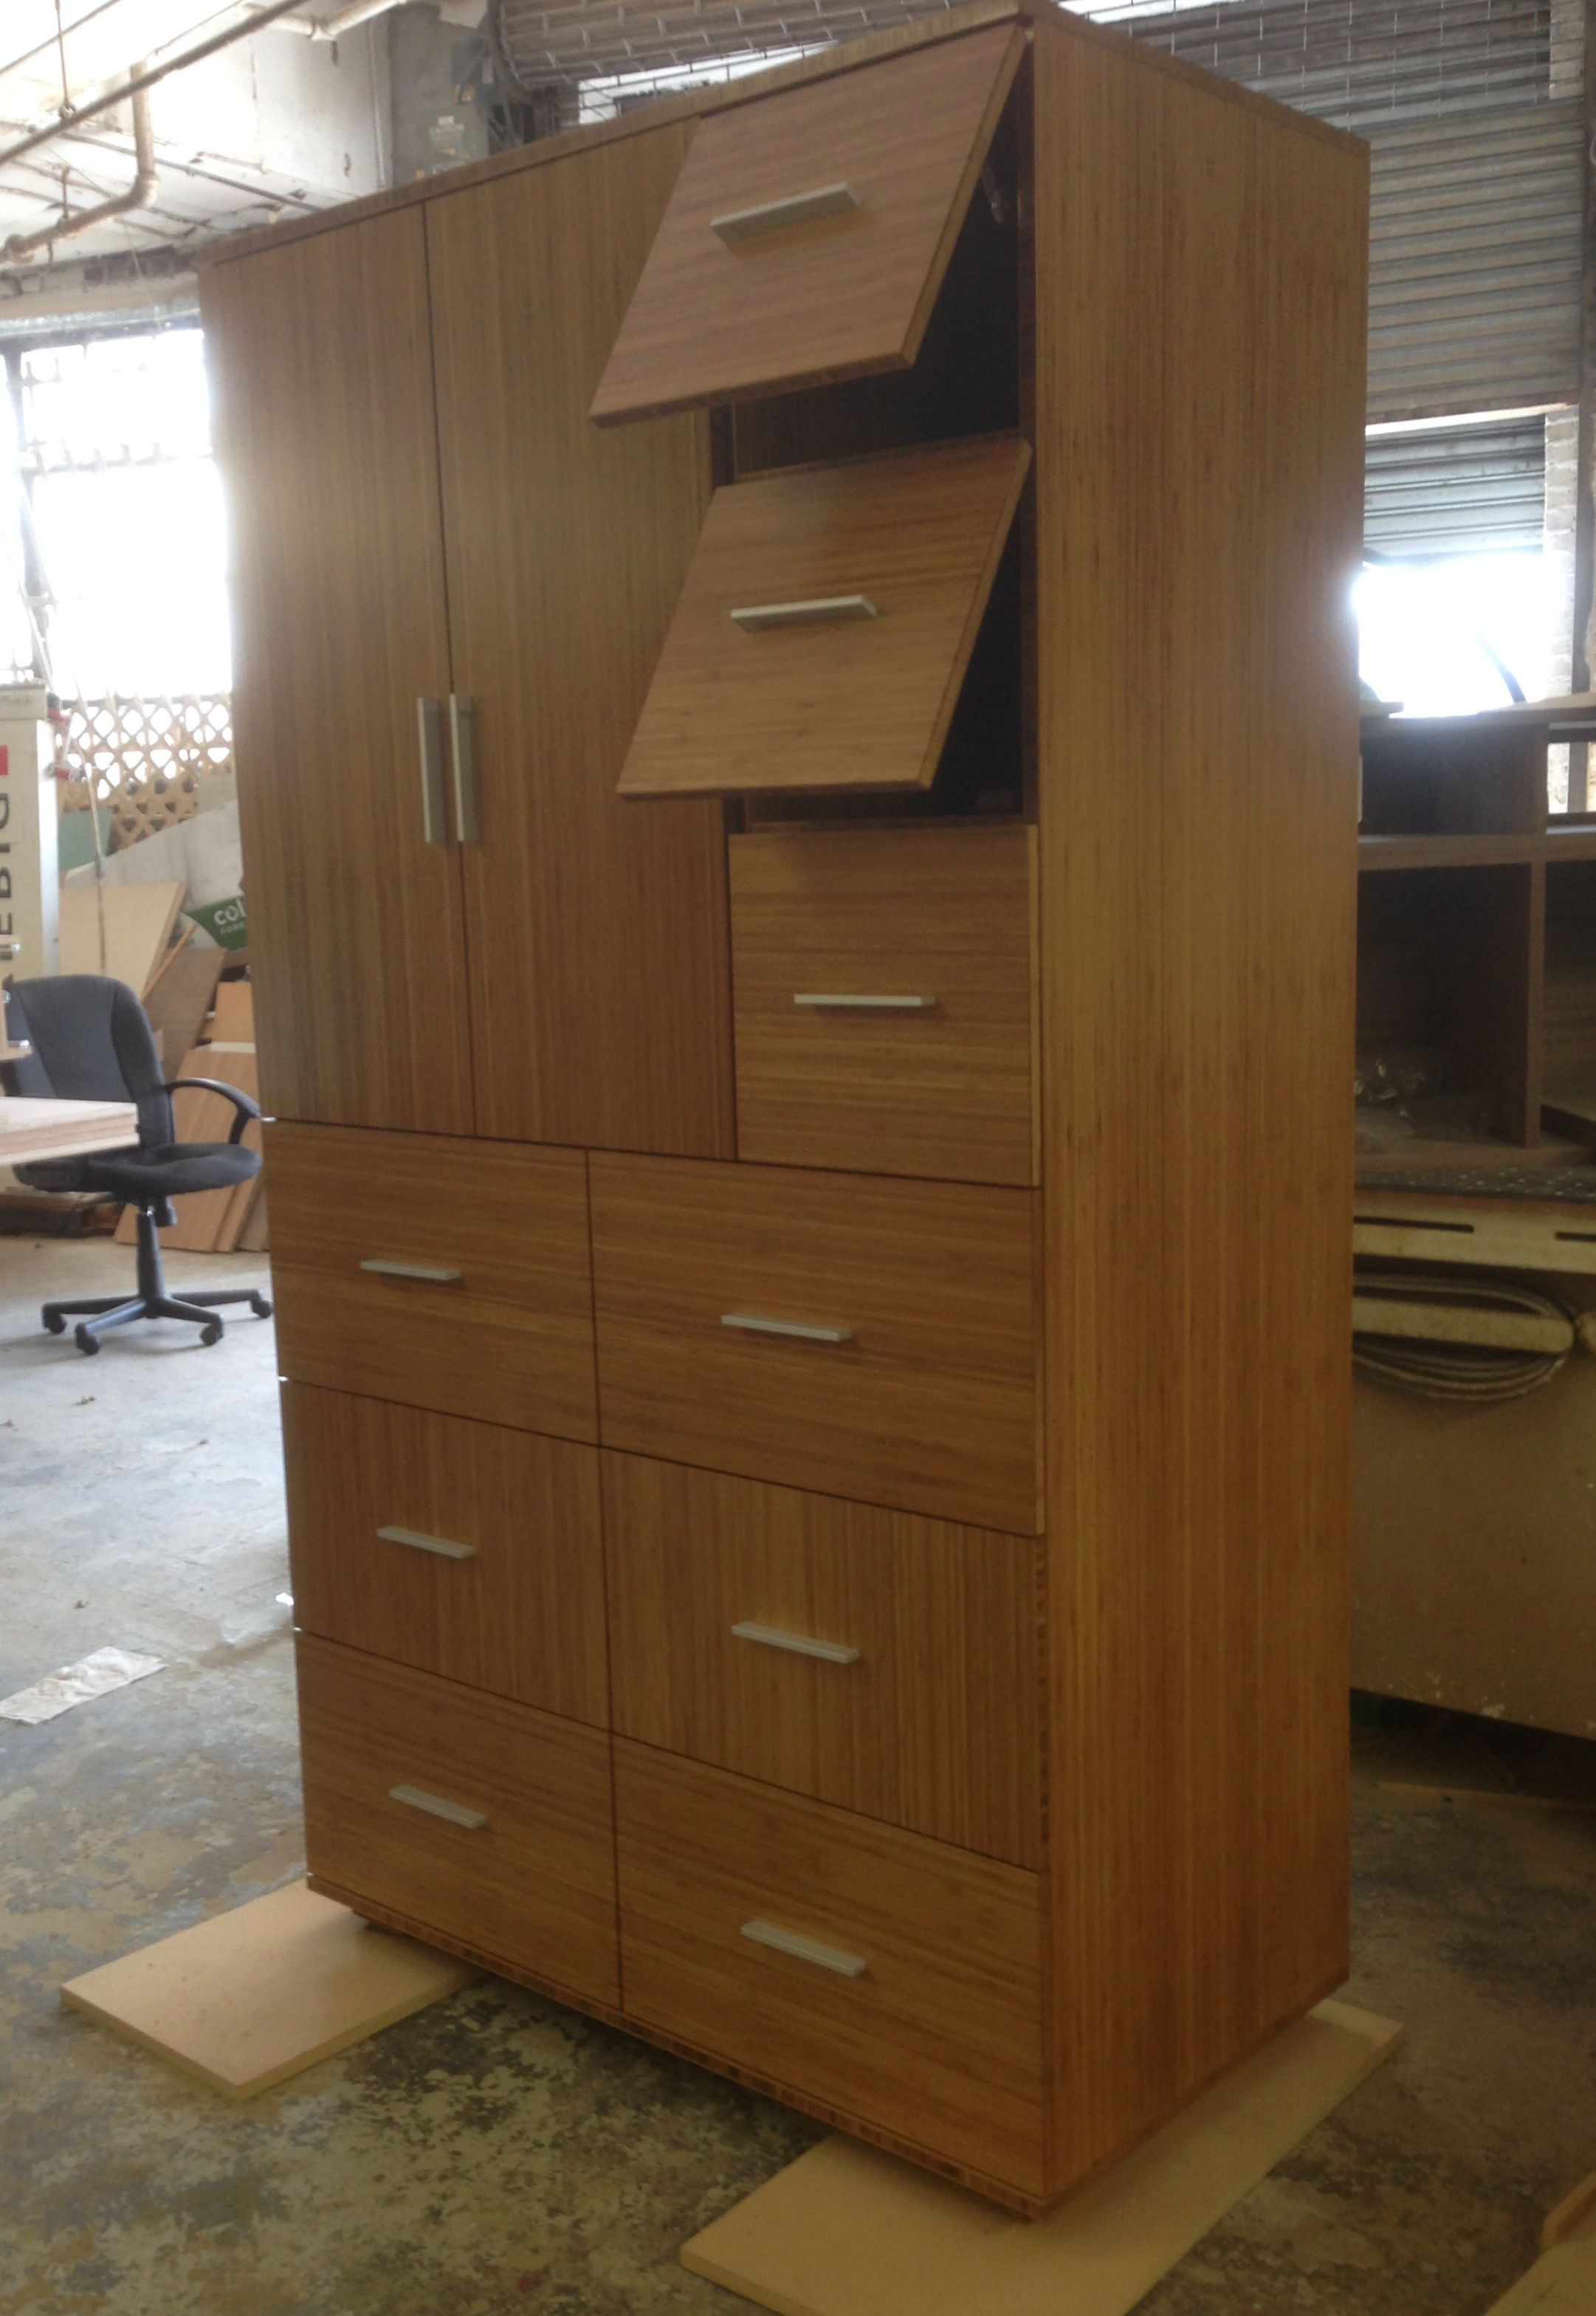 Merveilleux Custom Armoire With 9 Drawers Made Of Bamboo Ply With Alternating Grain  Direction On The Fronts